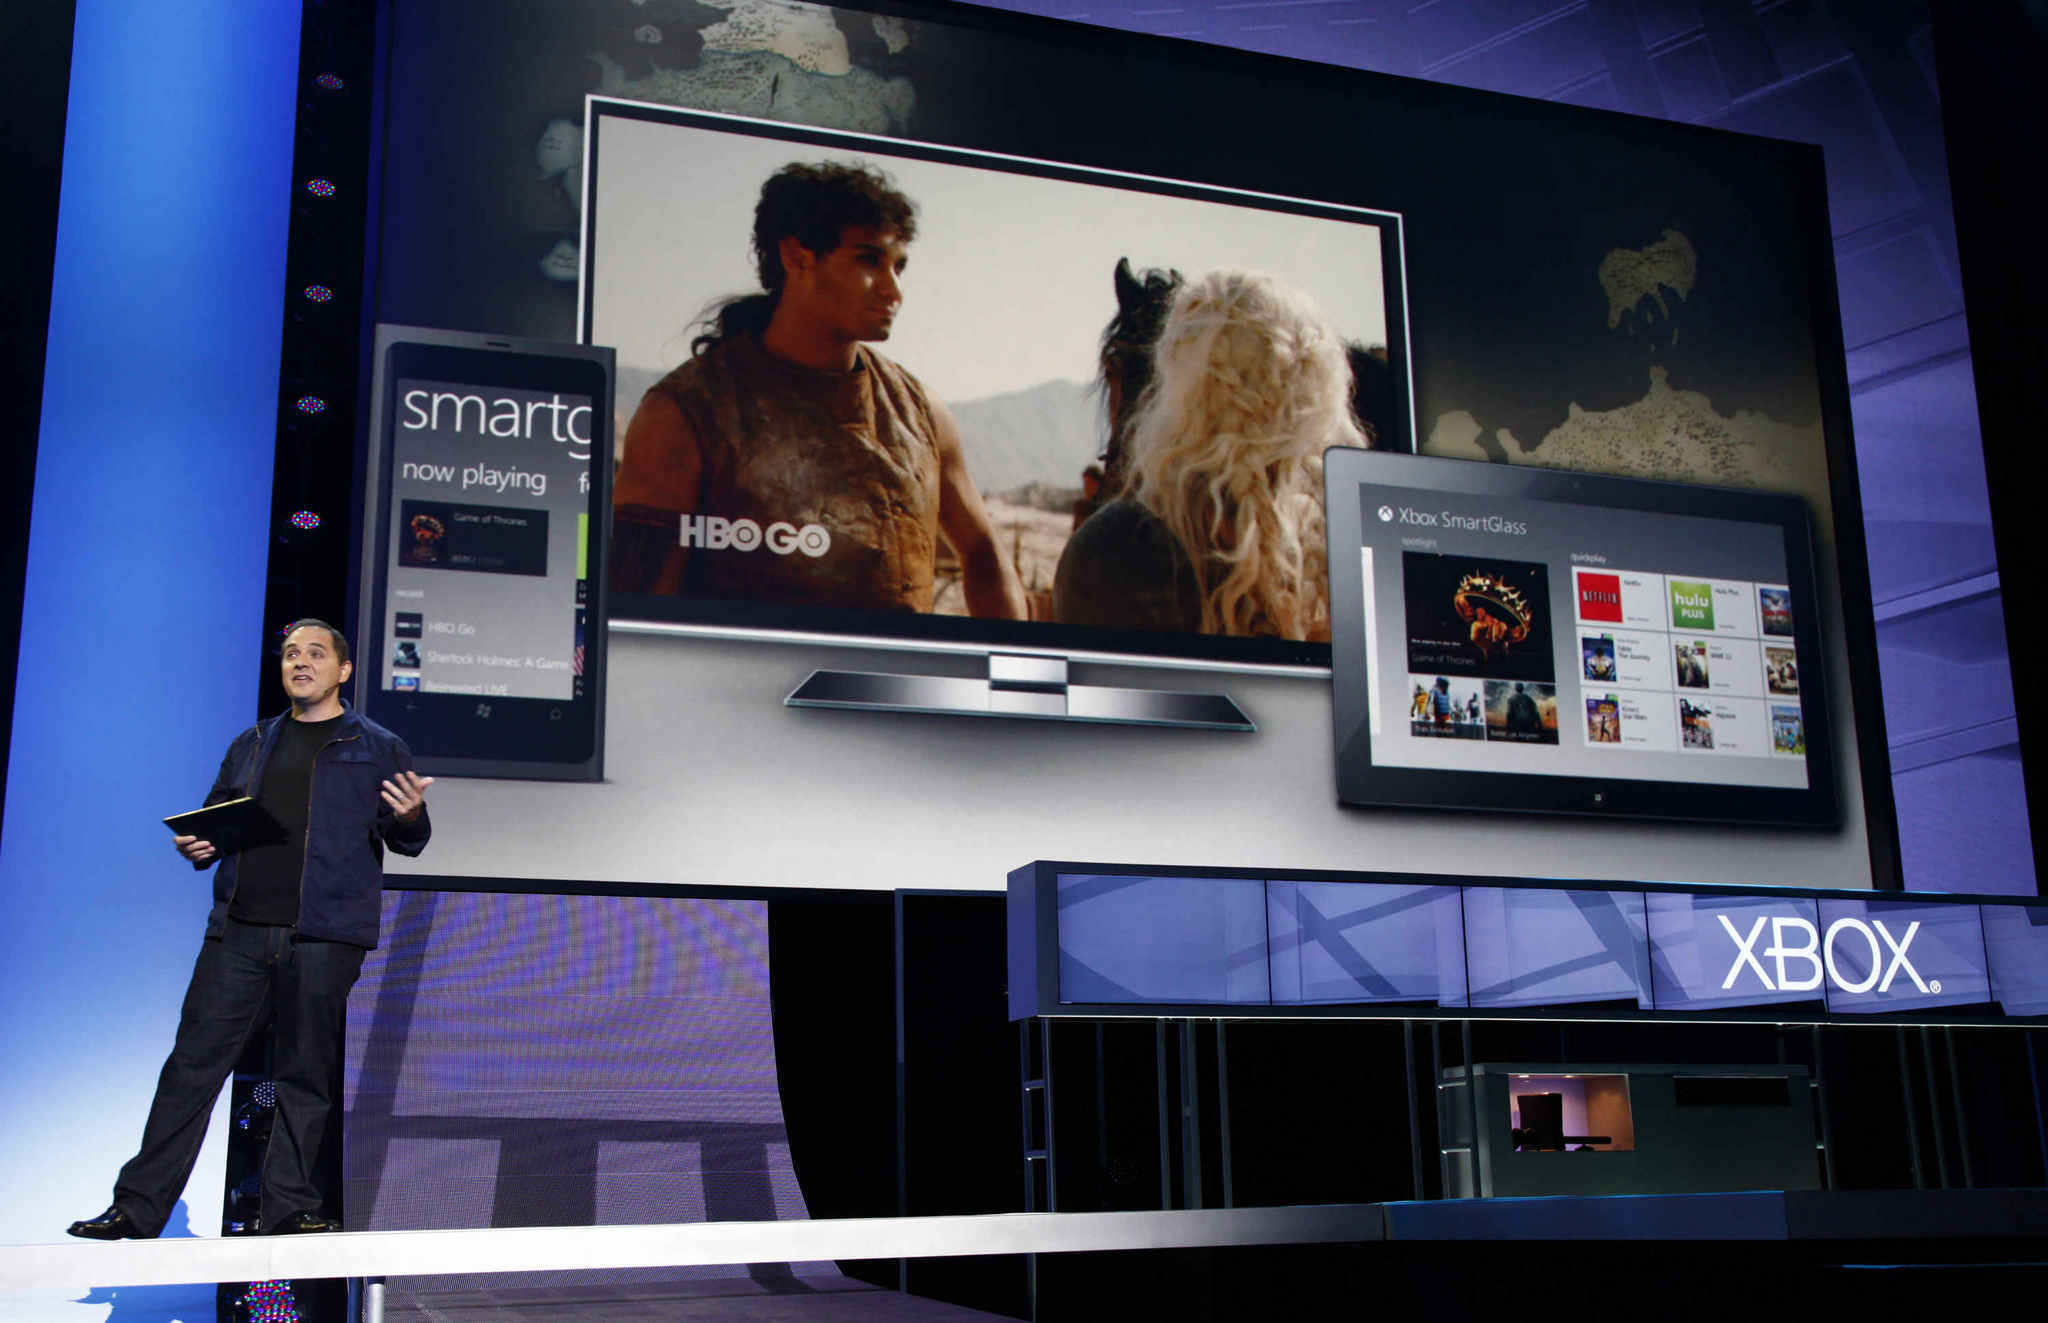 Can t wait to run smartglass and skype on my xbox 360 kinect